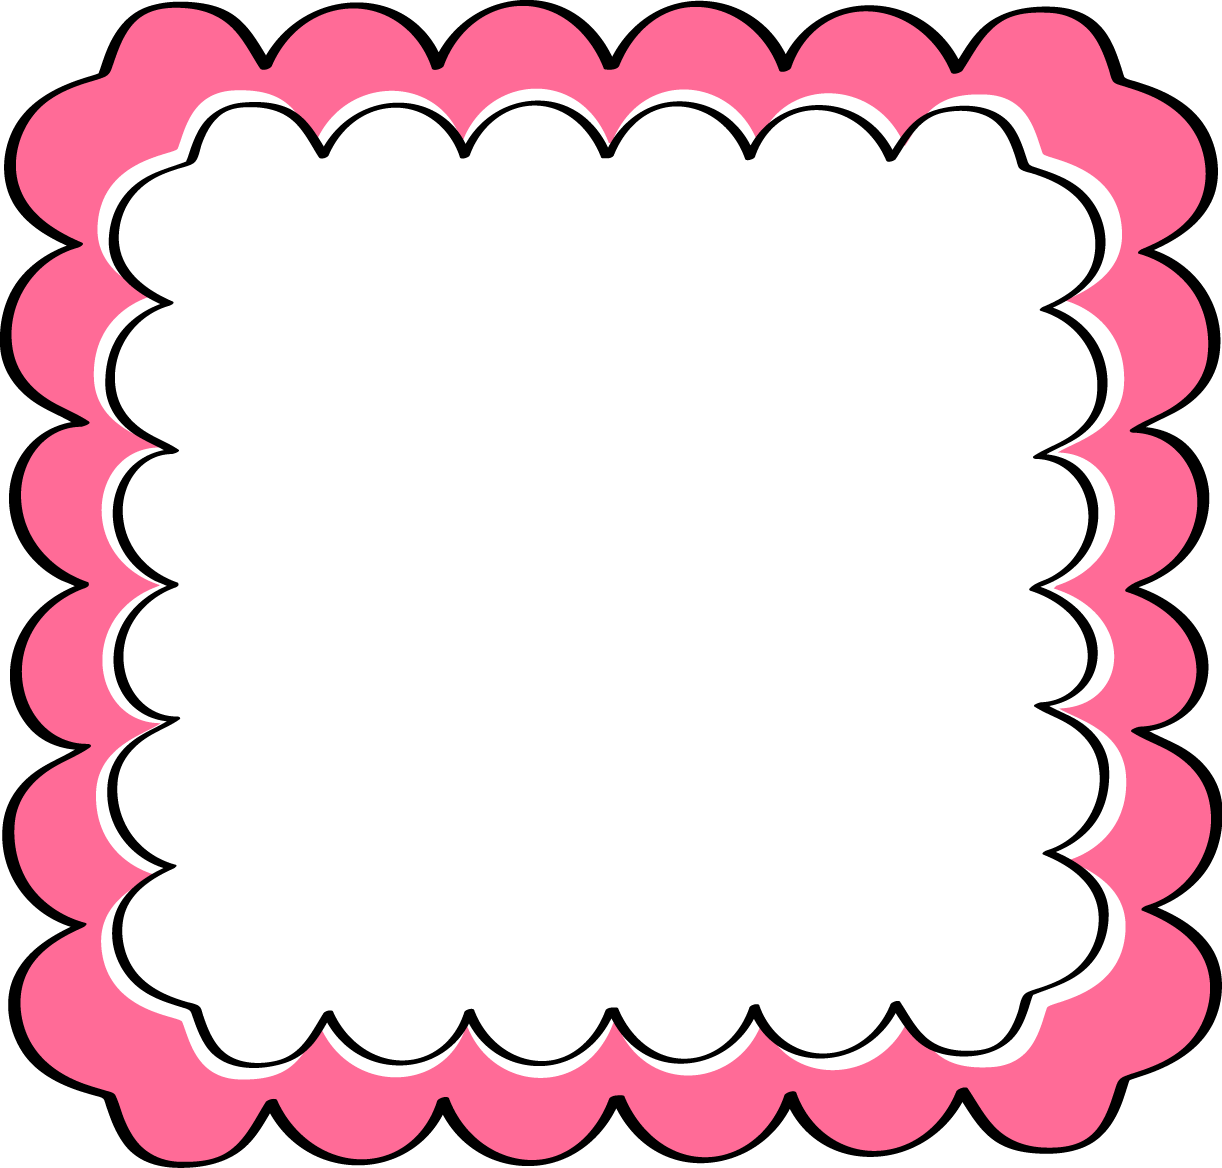 Frame clipart cute. Scallop panda free images